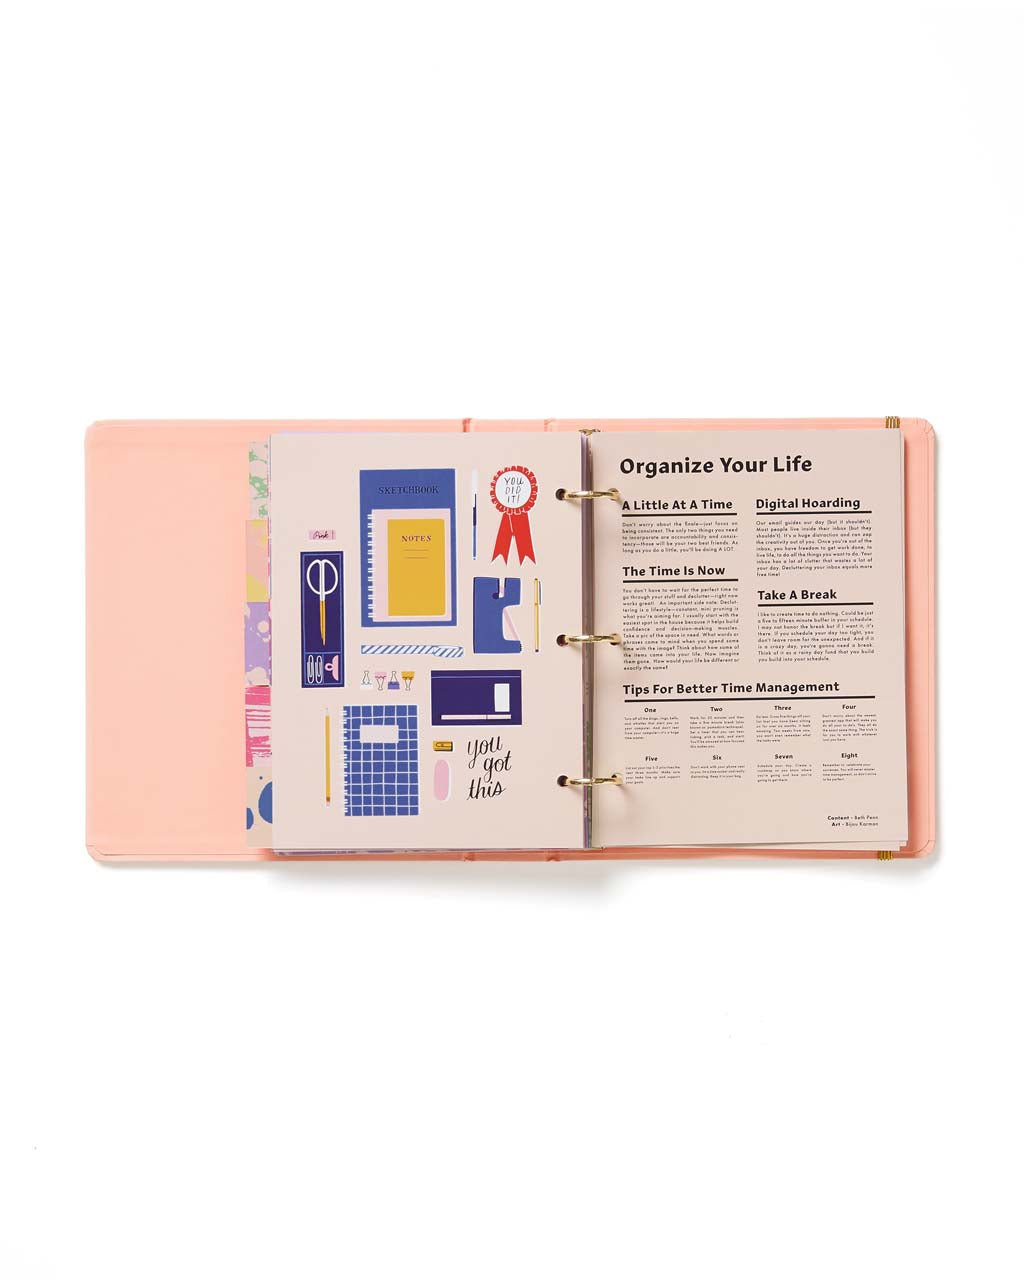 interior page: organizational tips